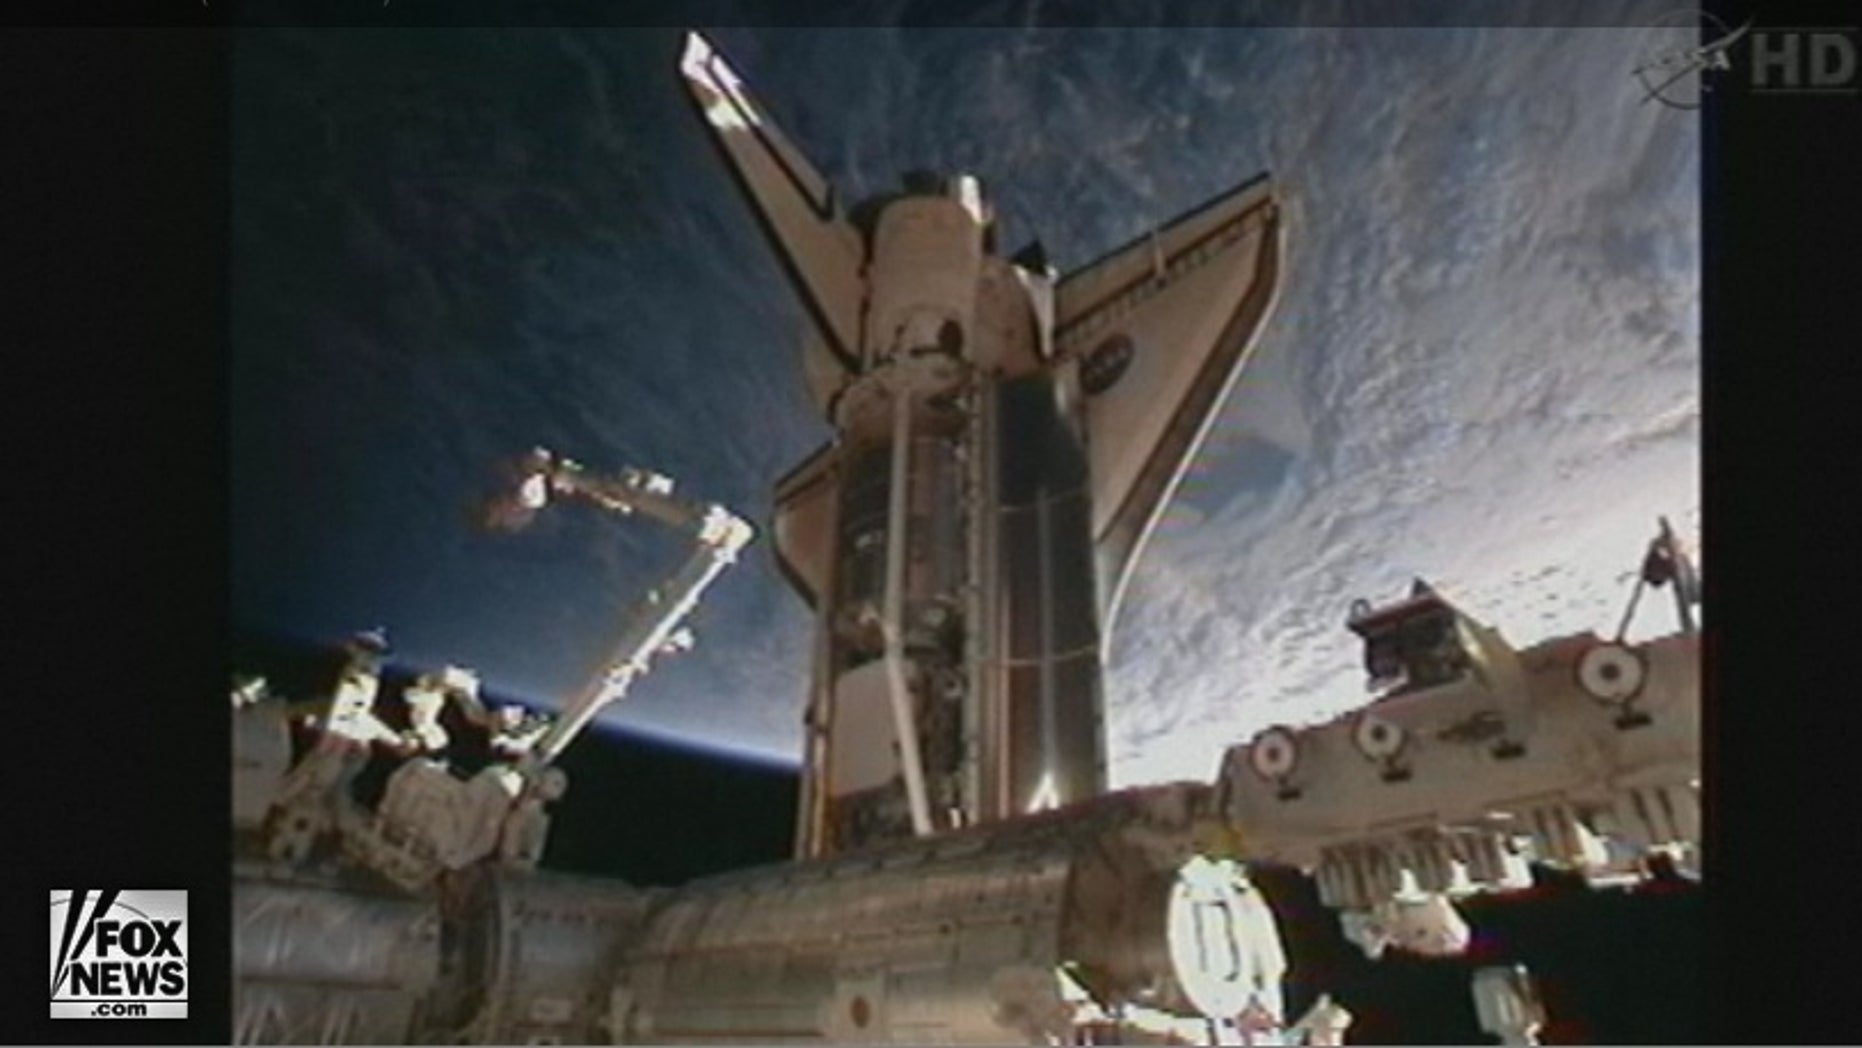 Space shuttle Discovery docked with the International Space Station at 2:14 p.m. EST Saturday.